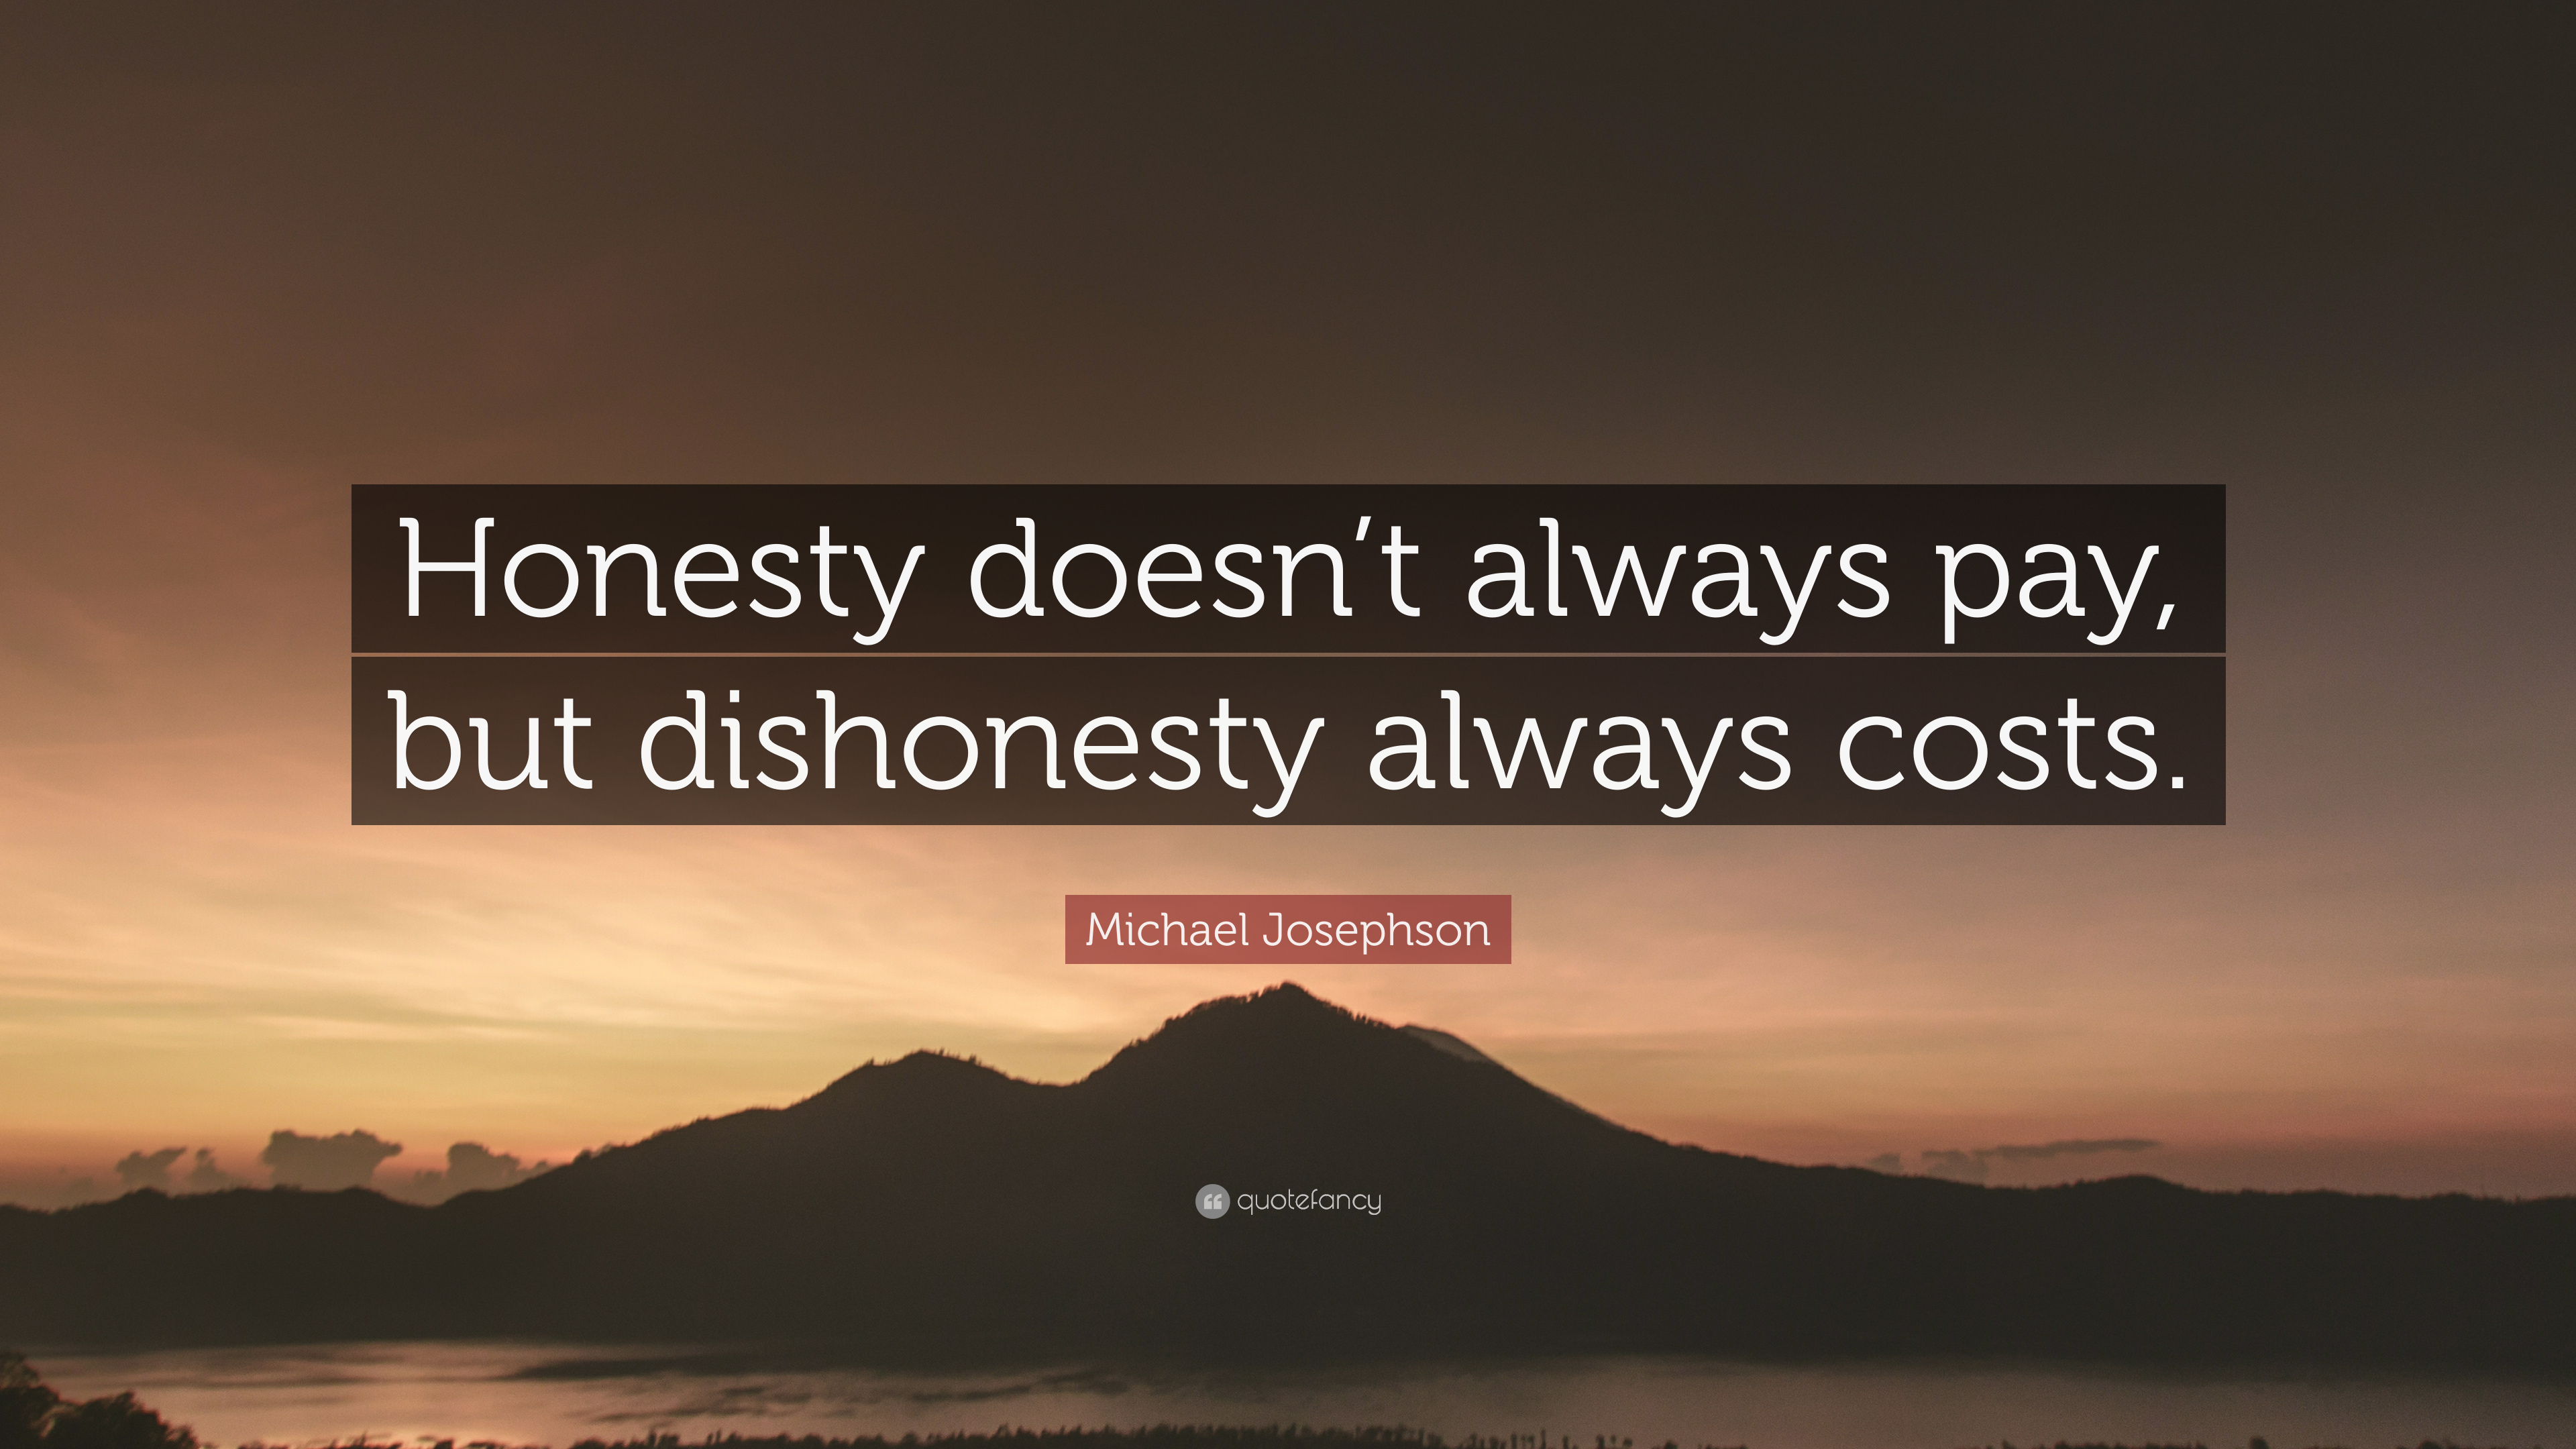 Michael Josephson Quote: Honesty doesnt always pay, but